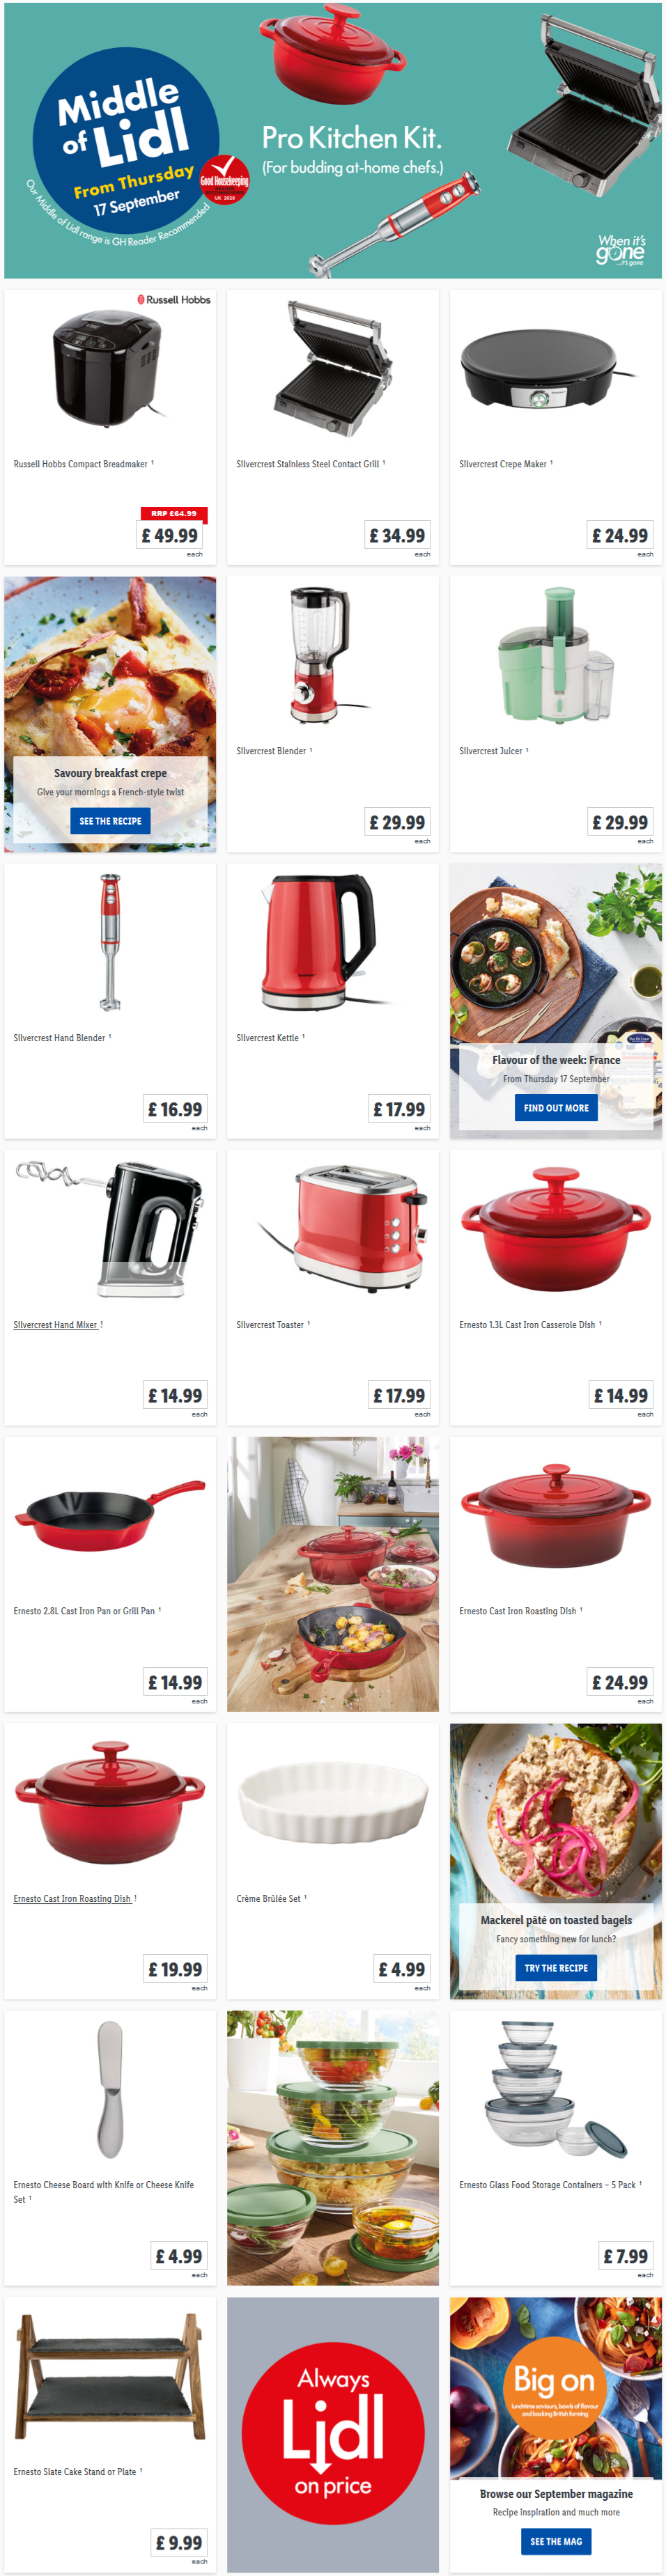 LIDL Offers this Thursday Pro Kitchen Kits From Thursday 17th September 2020